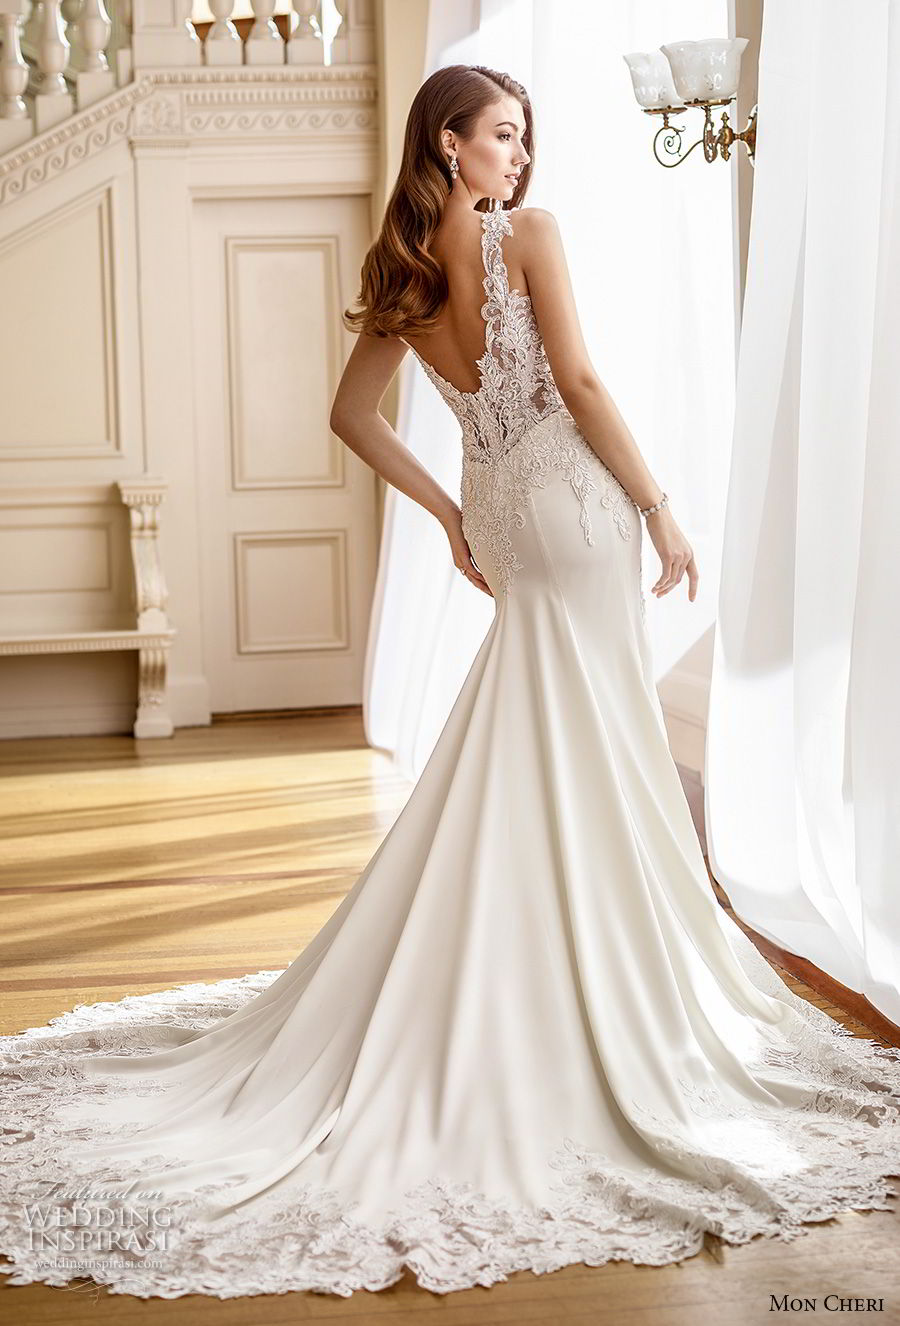 mon cheri fall 2017 bridal sleeveless with strap v neck heavily embellished bodice elegant fit and flare mermaid wedding dress open v back chapel train (225) bv